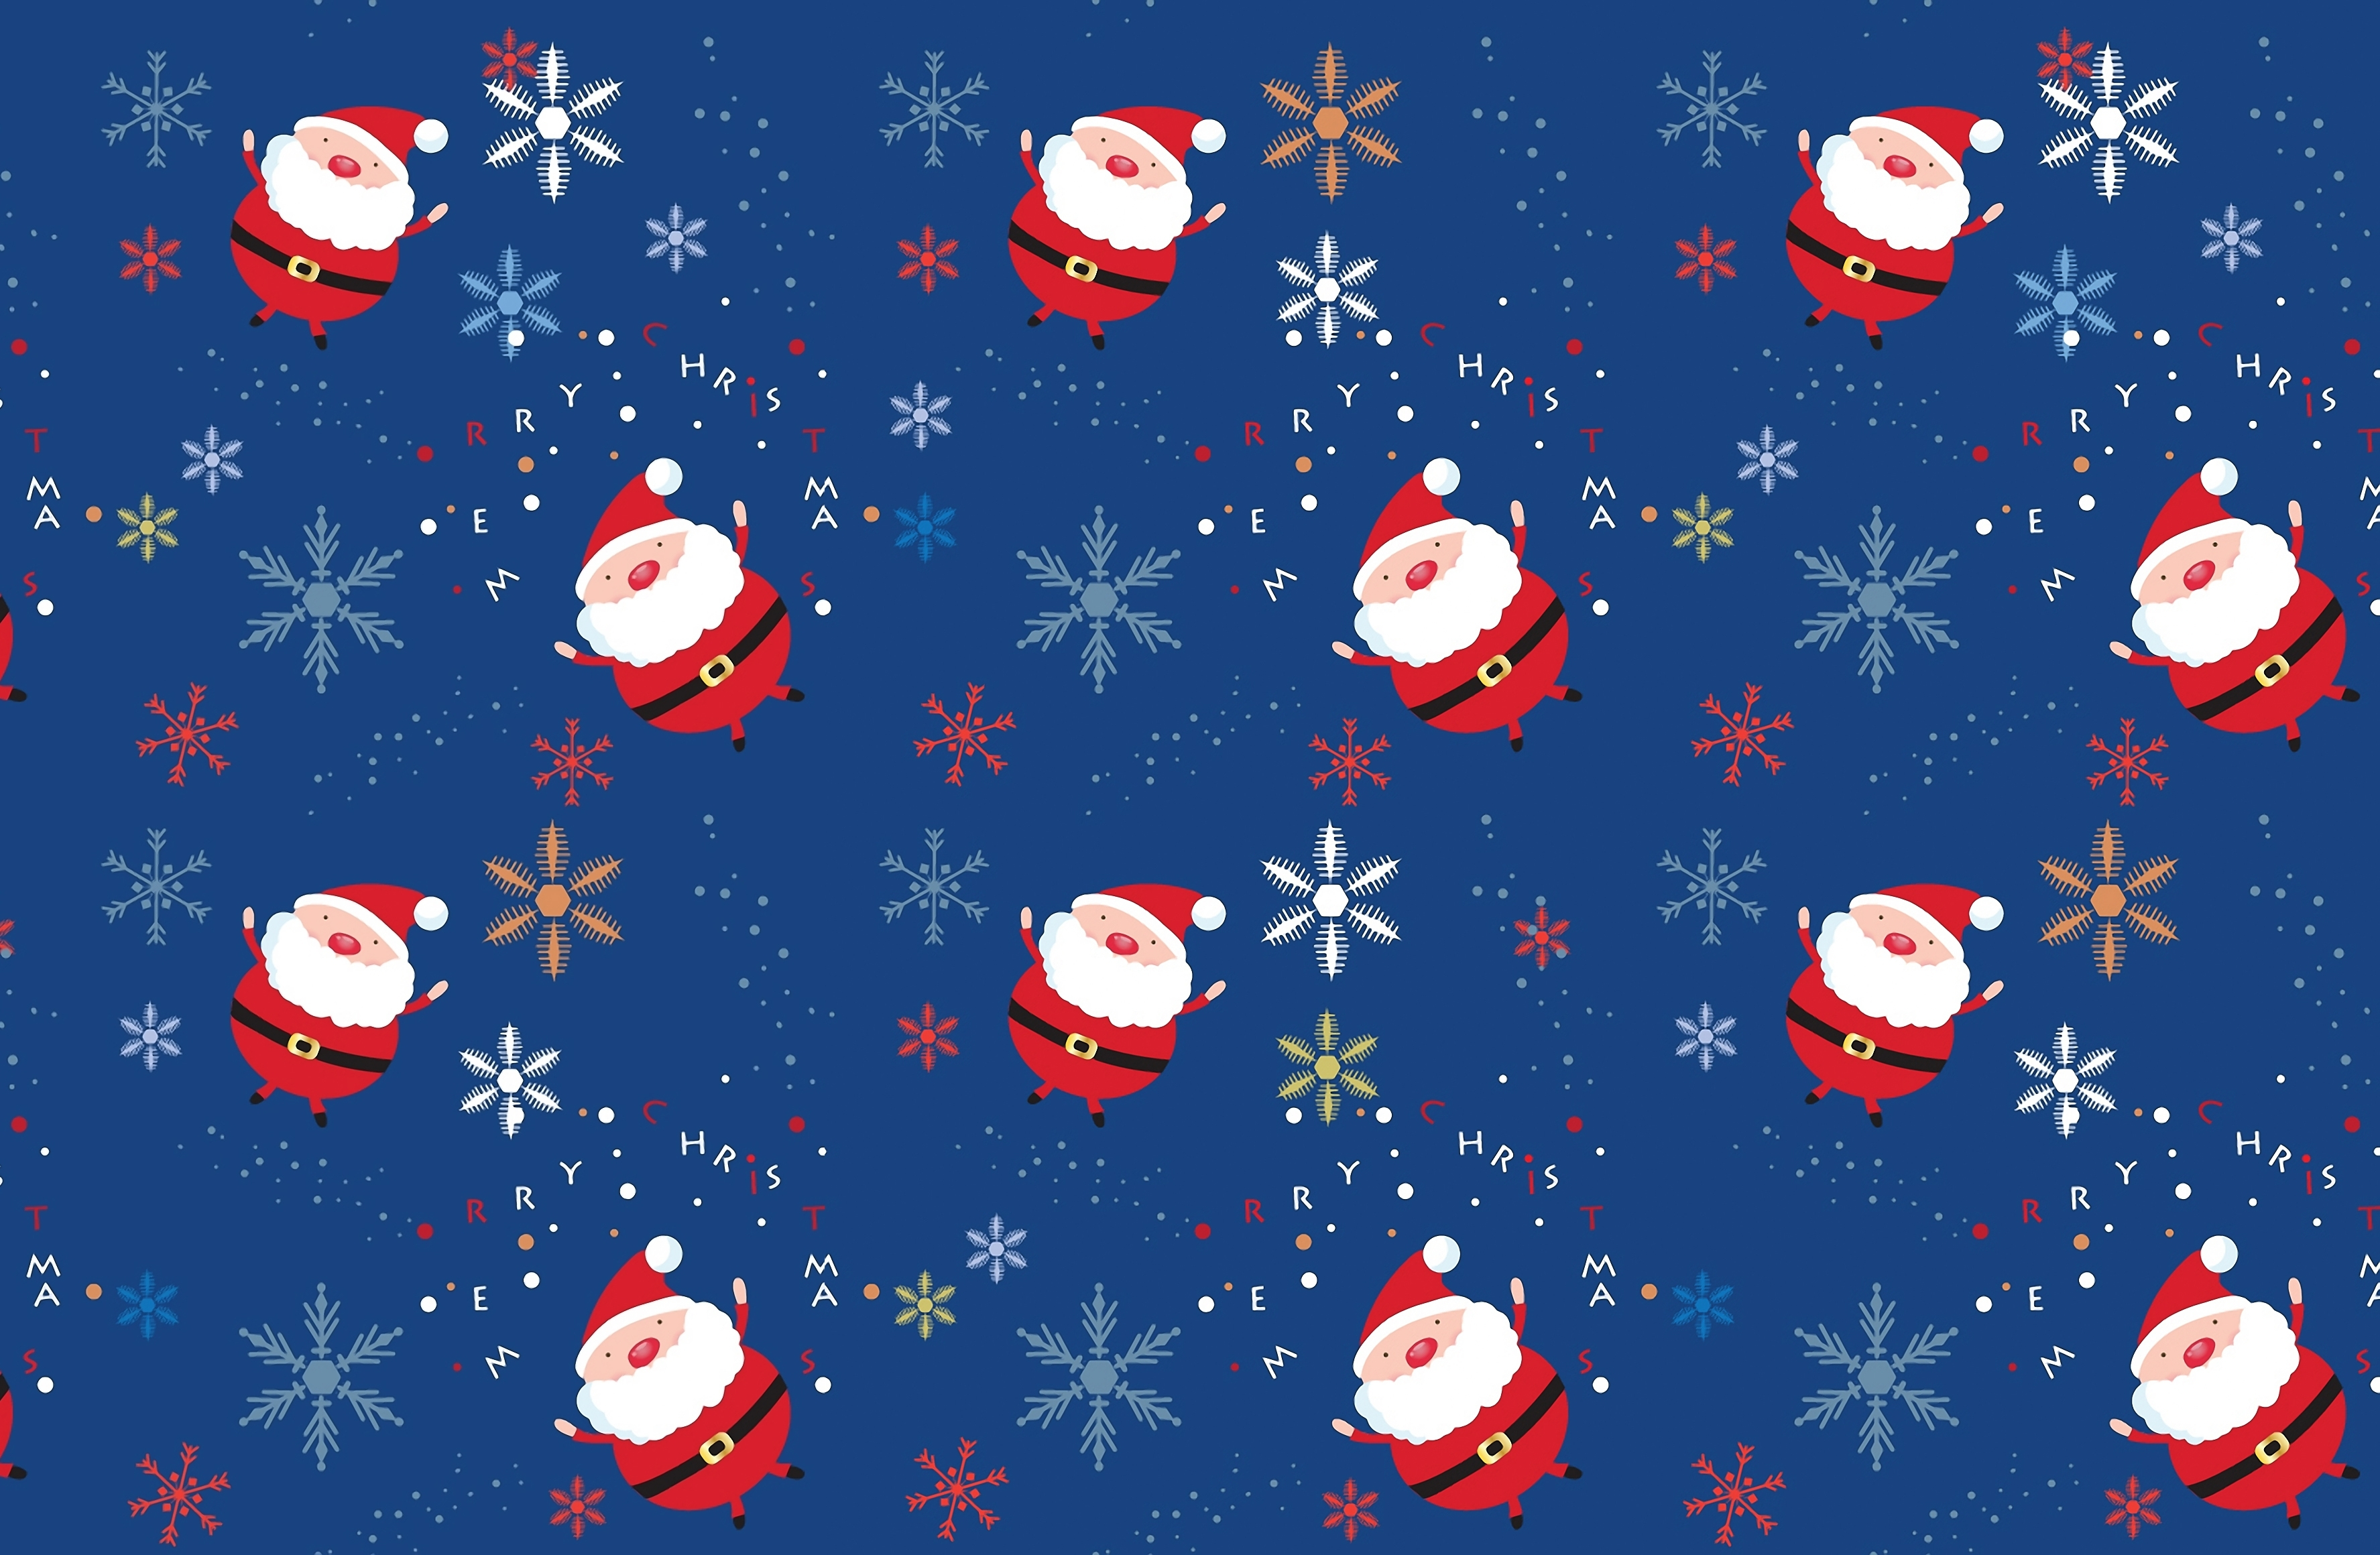 Background Vintage Santa Claus